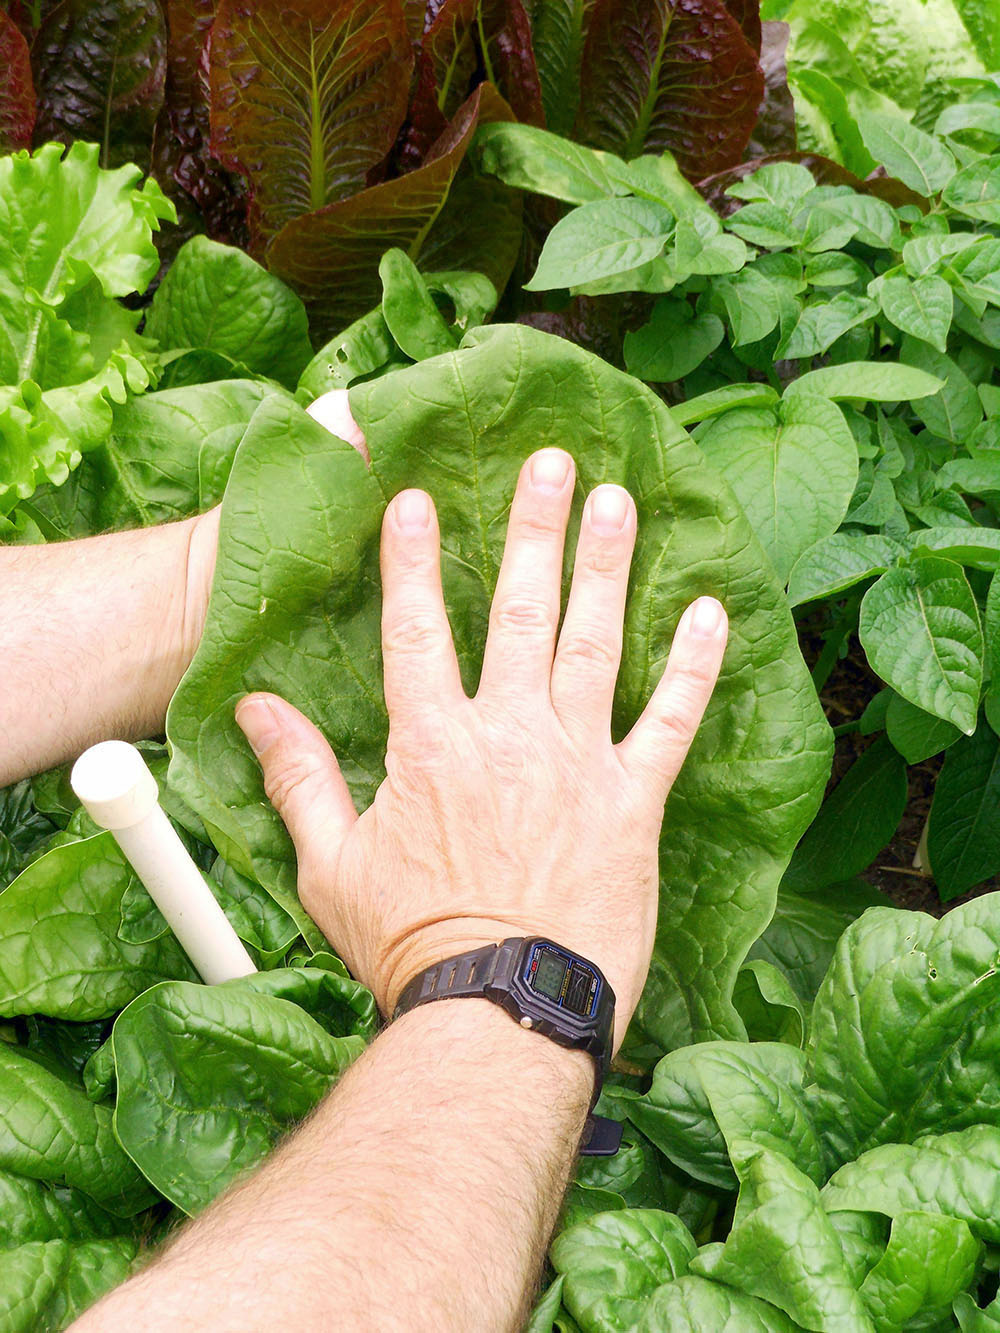 04-24-2014 Giant Spinach Leaves 02.jpg